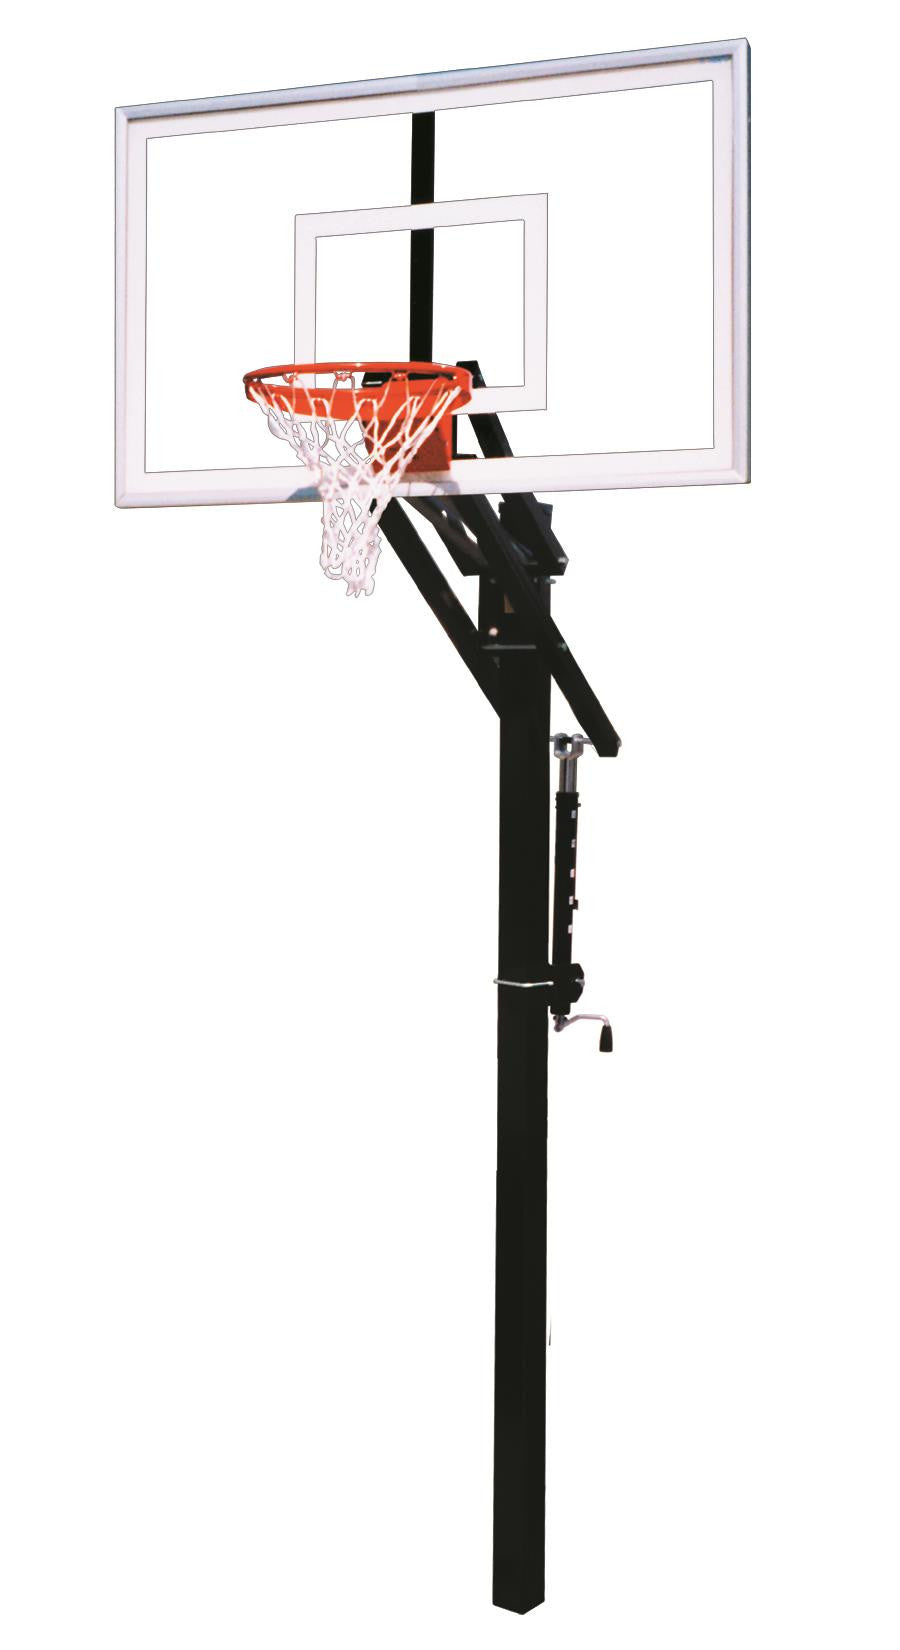 First Team Jam Select In Ground Outdoor Adjustable Basketball Hoop 60 inch Acrylic